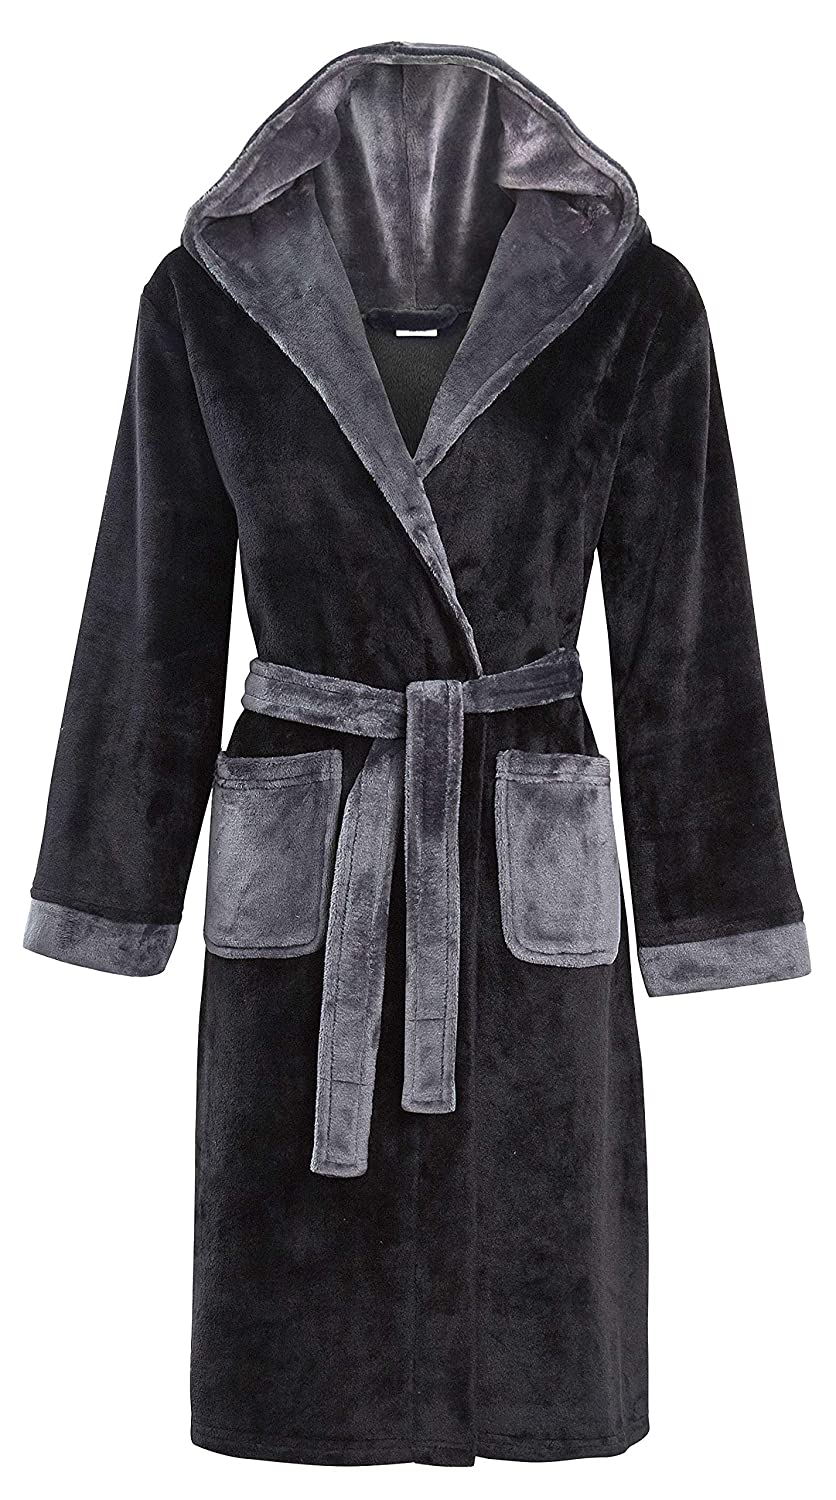 Boys Luxury Flannel Fleece Hooded Dressing Gown Navy Blue or Black with Grey Size 7 8 9 10 11 12 13 Years